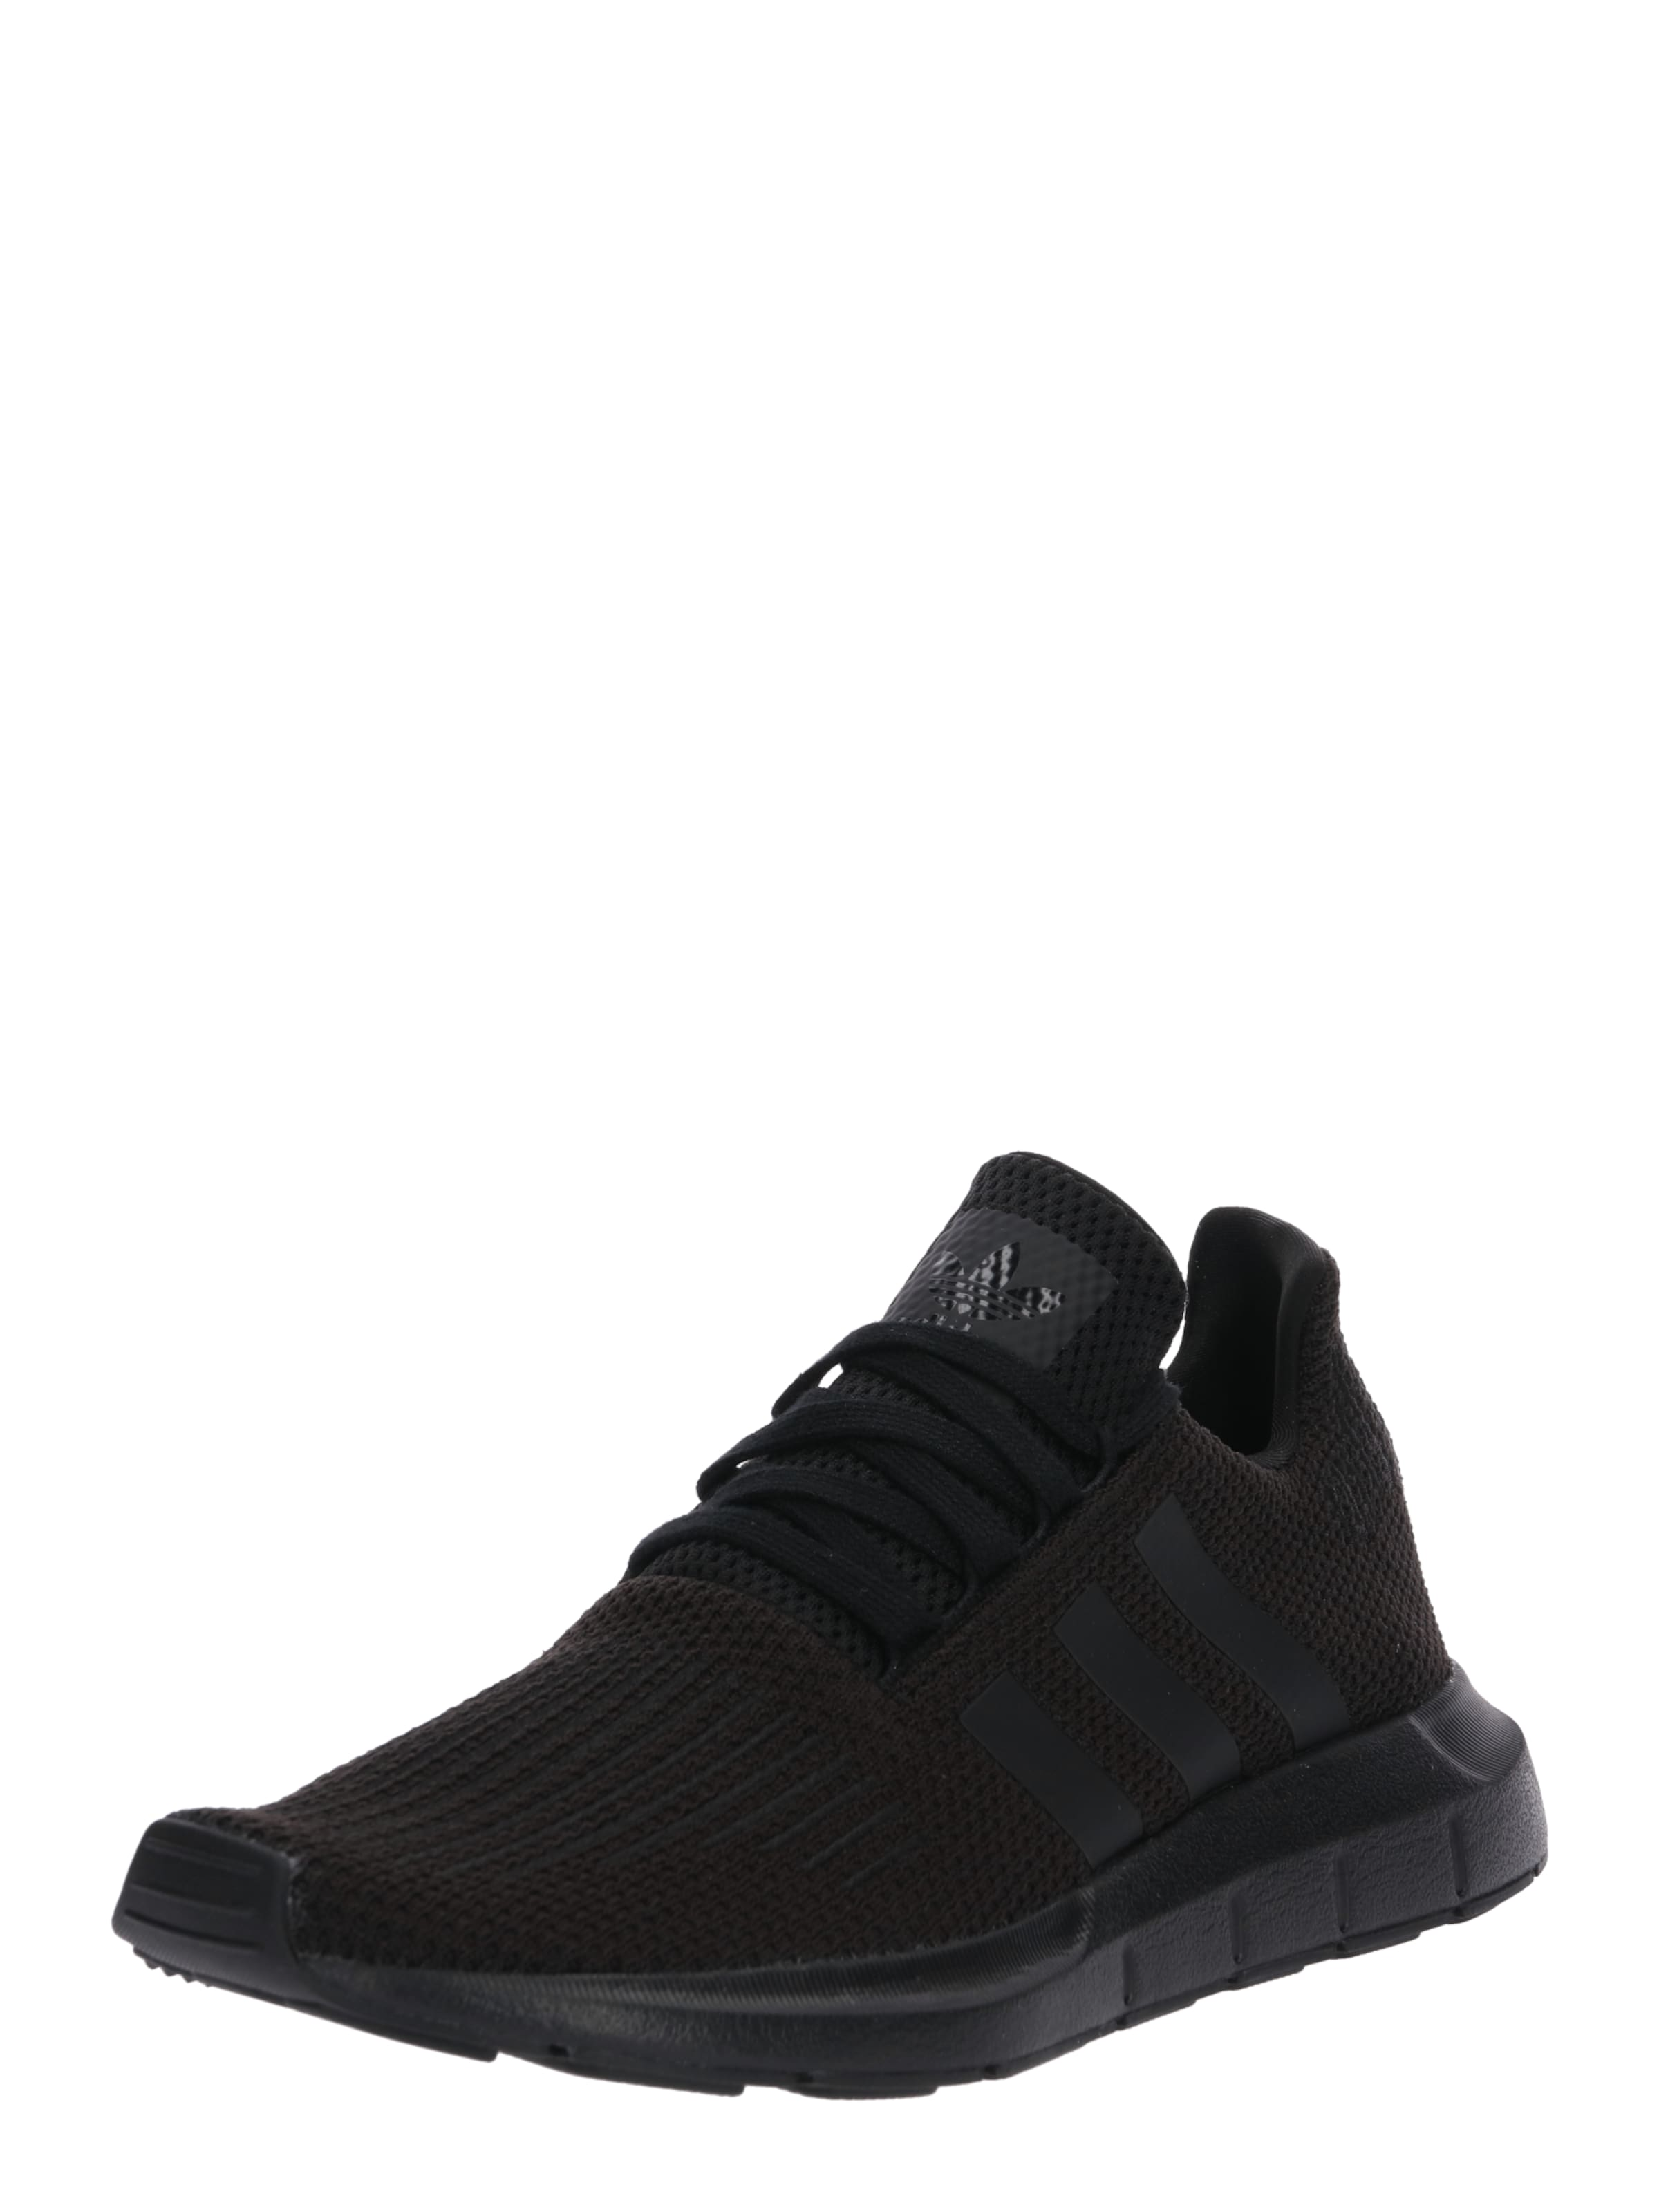 Run' Schwarz Adidas In Originals 'swift Sneaker OwZ0nPXN8k